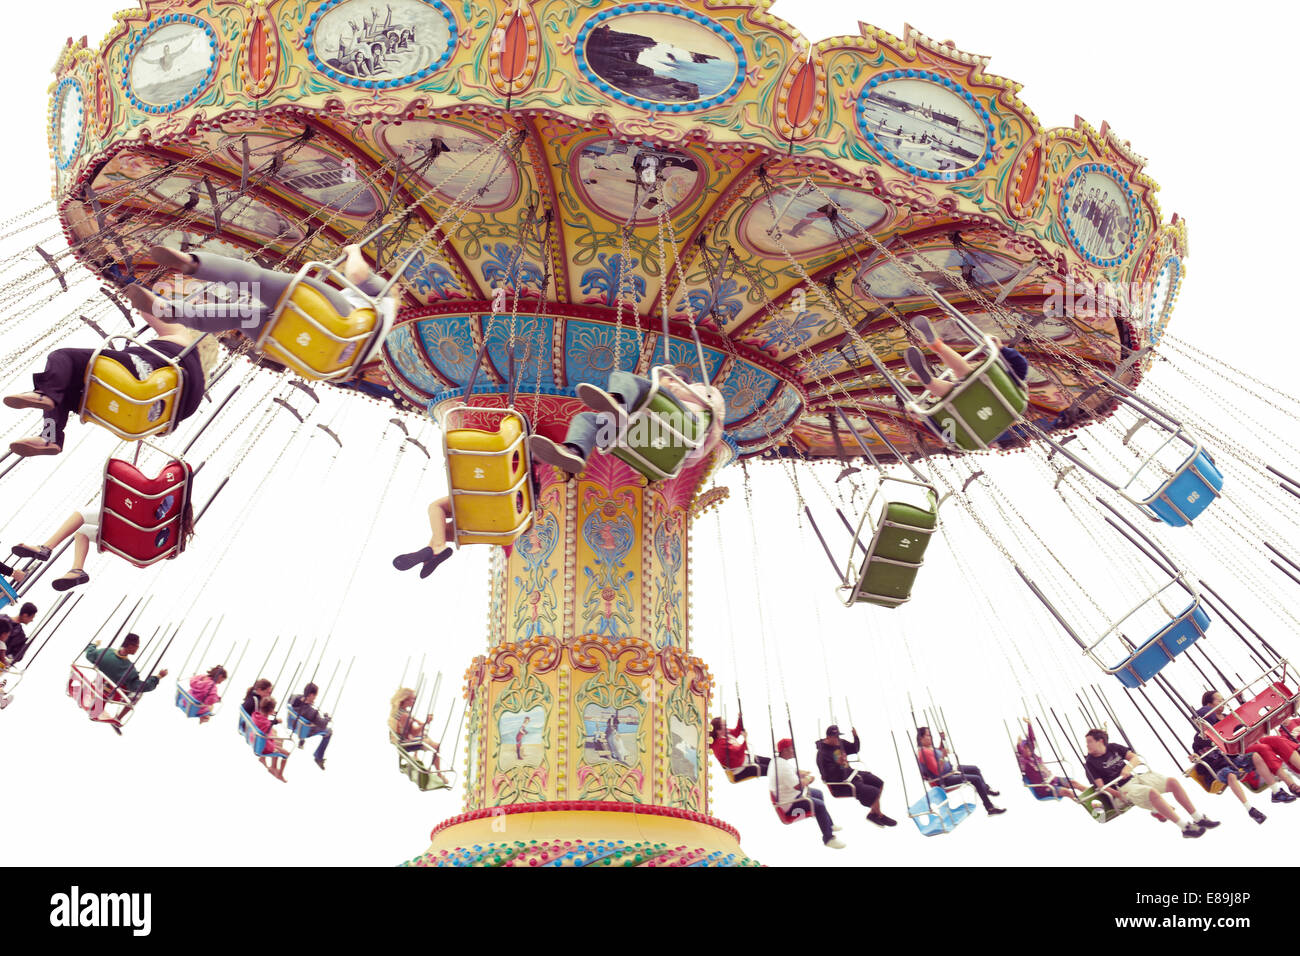 Spinning swings at fair - Stock Image